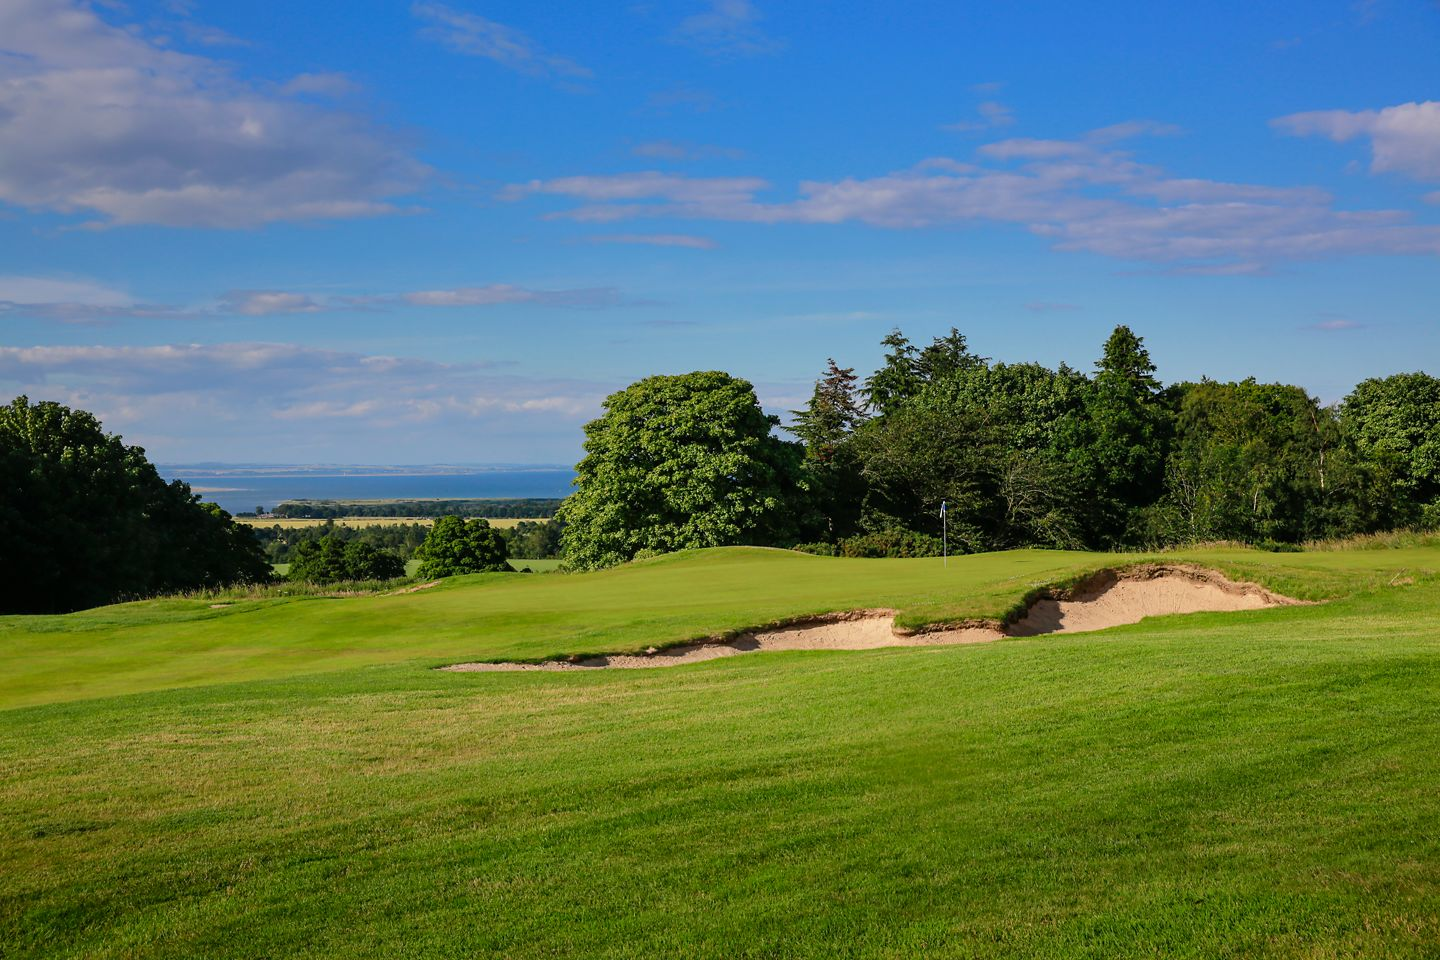 No. 6 Badgers. The Duke's 6th green from the right of the hole with the coastline visible in the background.